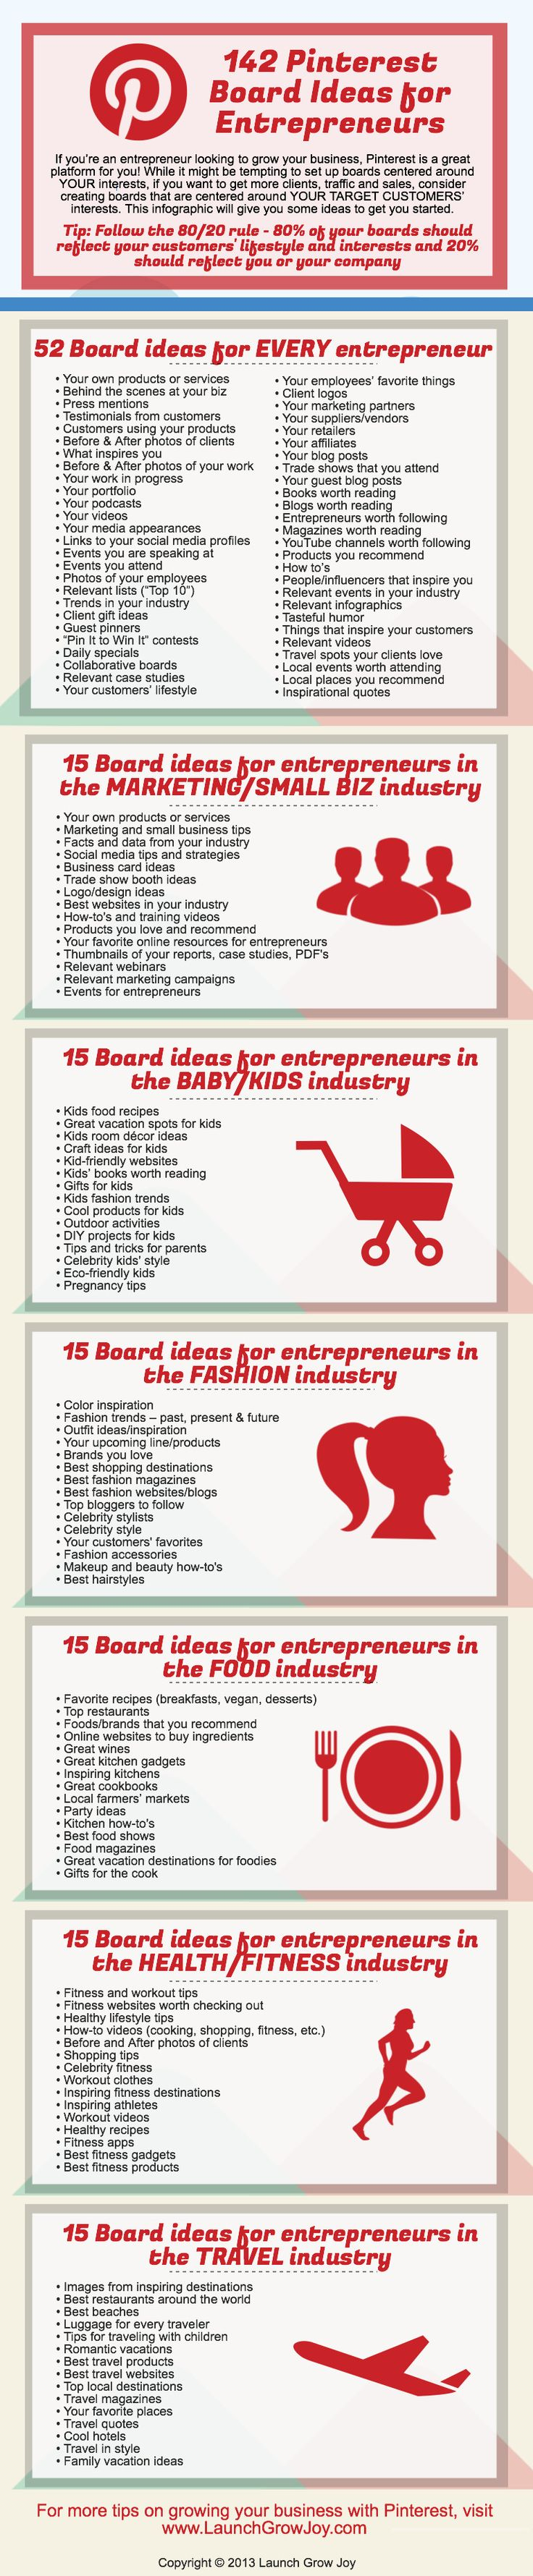 142 Pinterest Board Ideas for Entrepreneurs [INFOGRAPHIC]